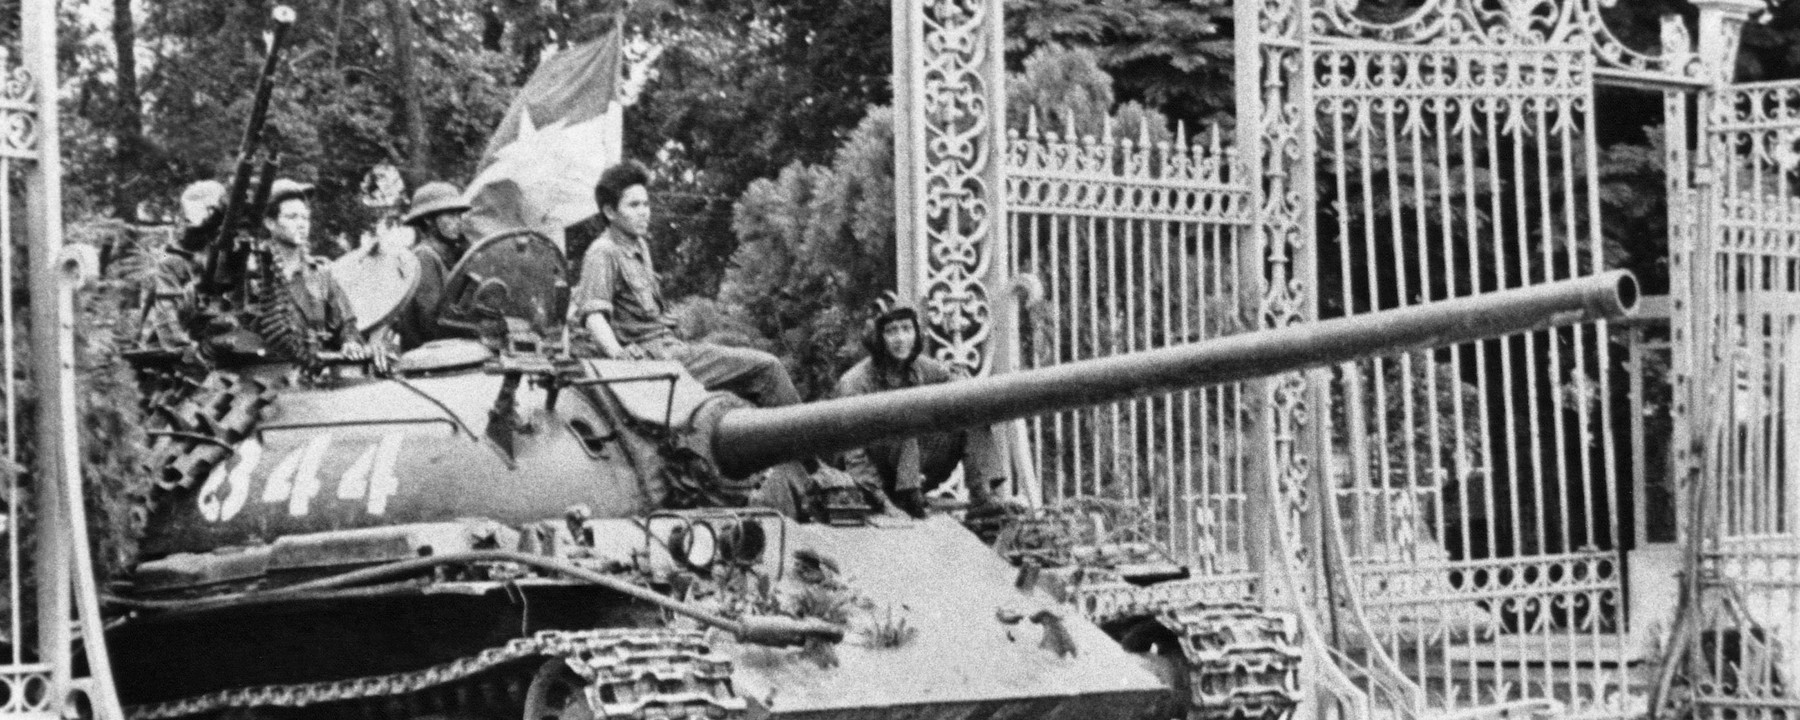 From the Fall of Saigon to Fighting the Islamic State, People Find the Bright Side to War